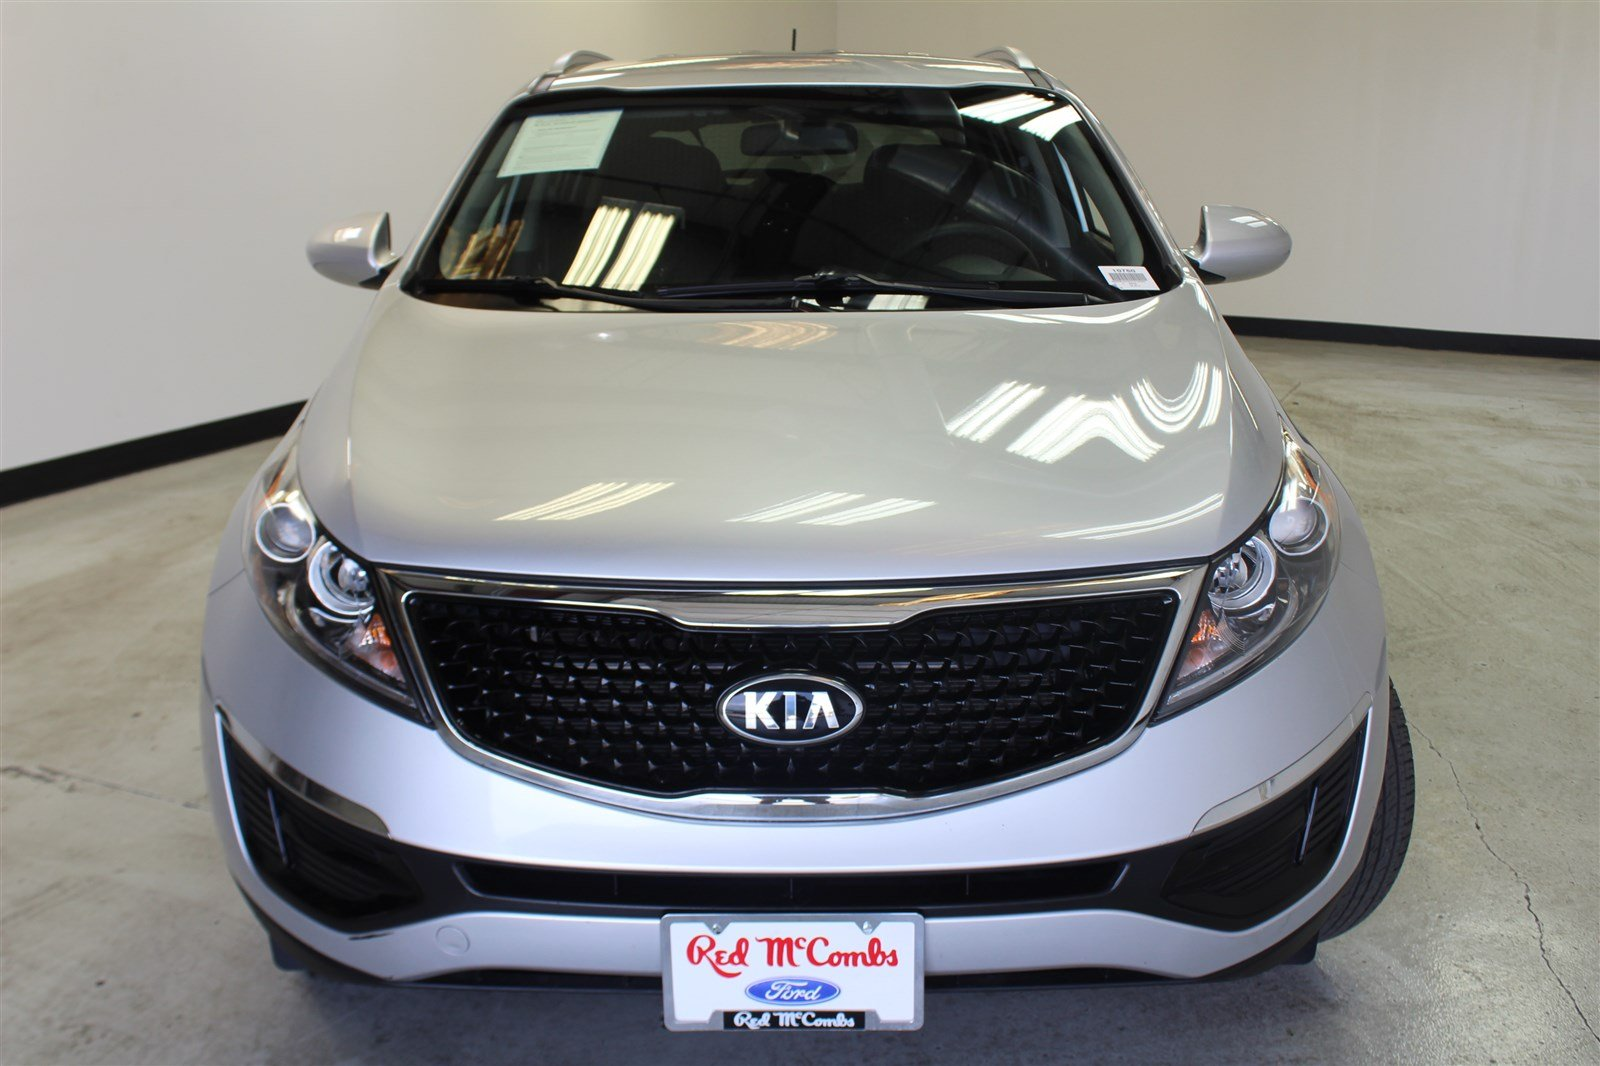 better looks photo even gallery real spotted life sportage in kia news free camouflage